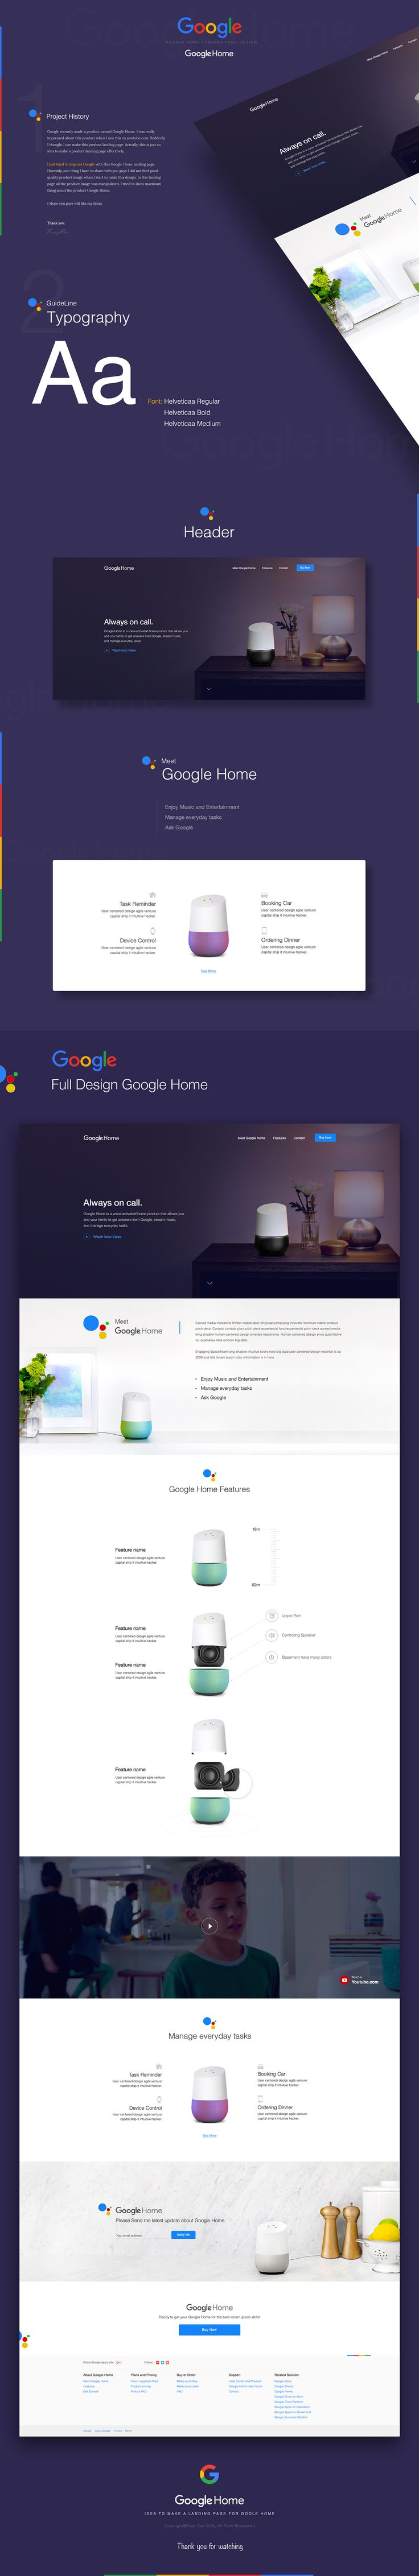 Google Home Landing Page on Behance